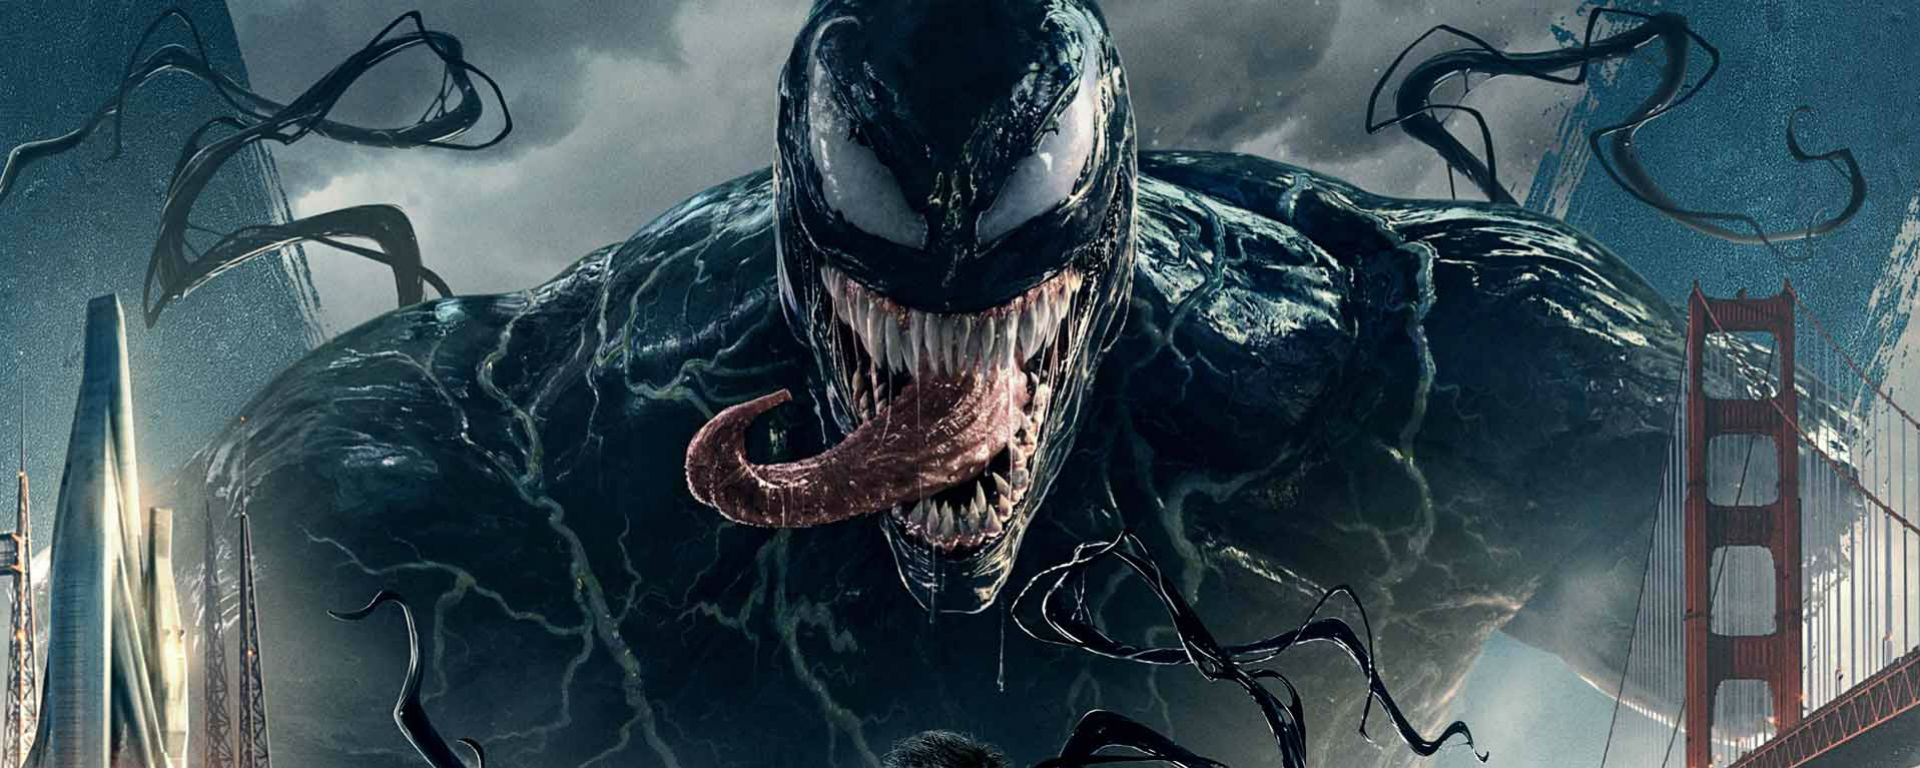 sony venom 2018 movie review feature image